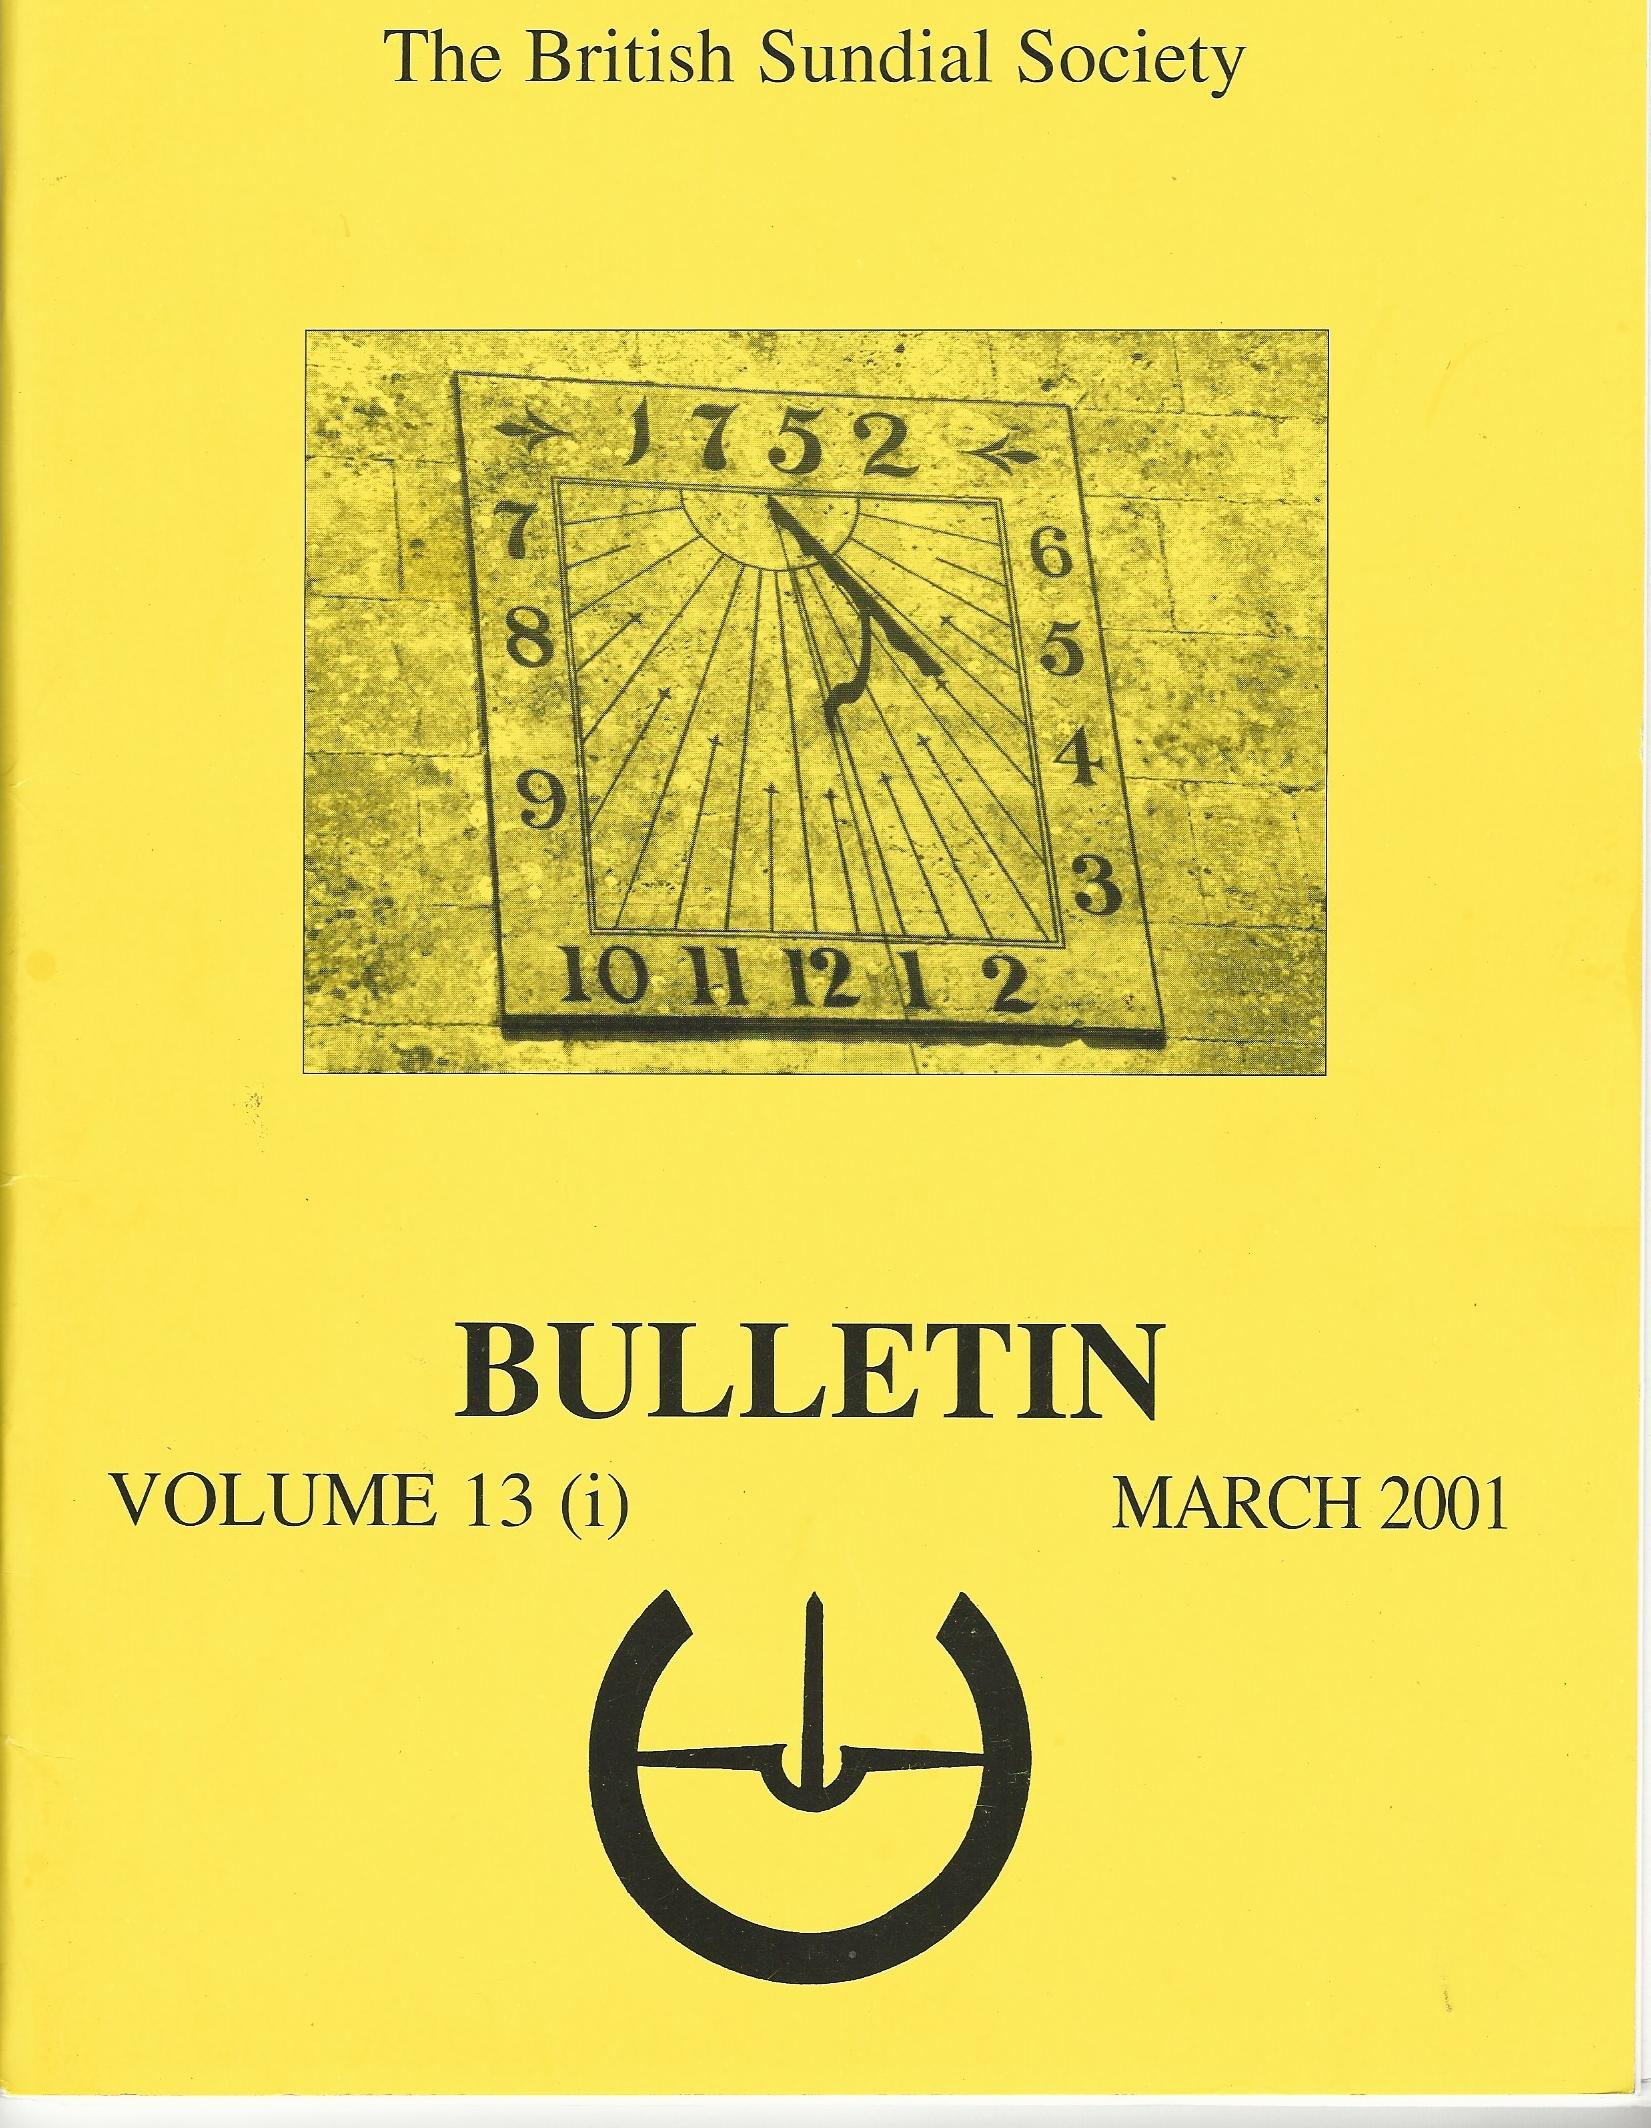 Image for The British Sundial Society Bulletin Volume 13 (i) March 2001.